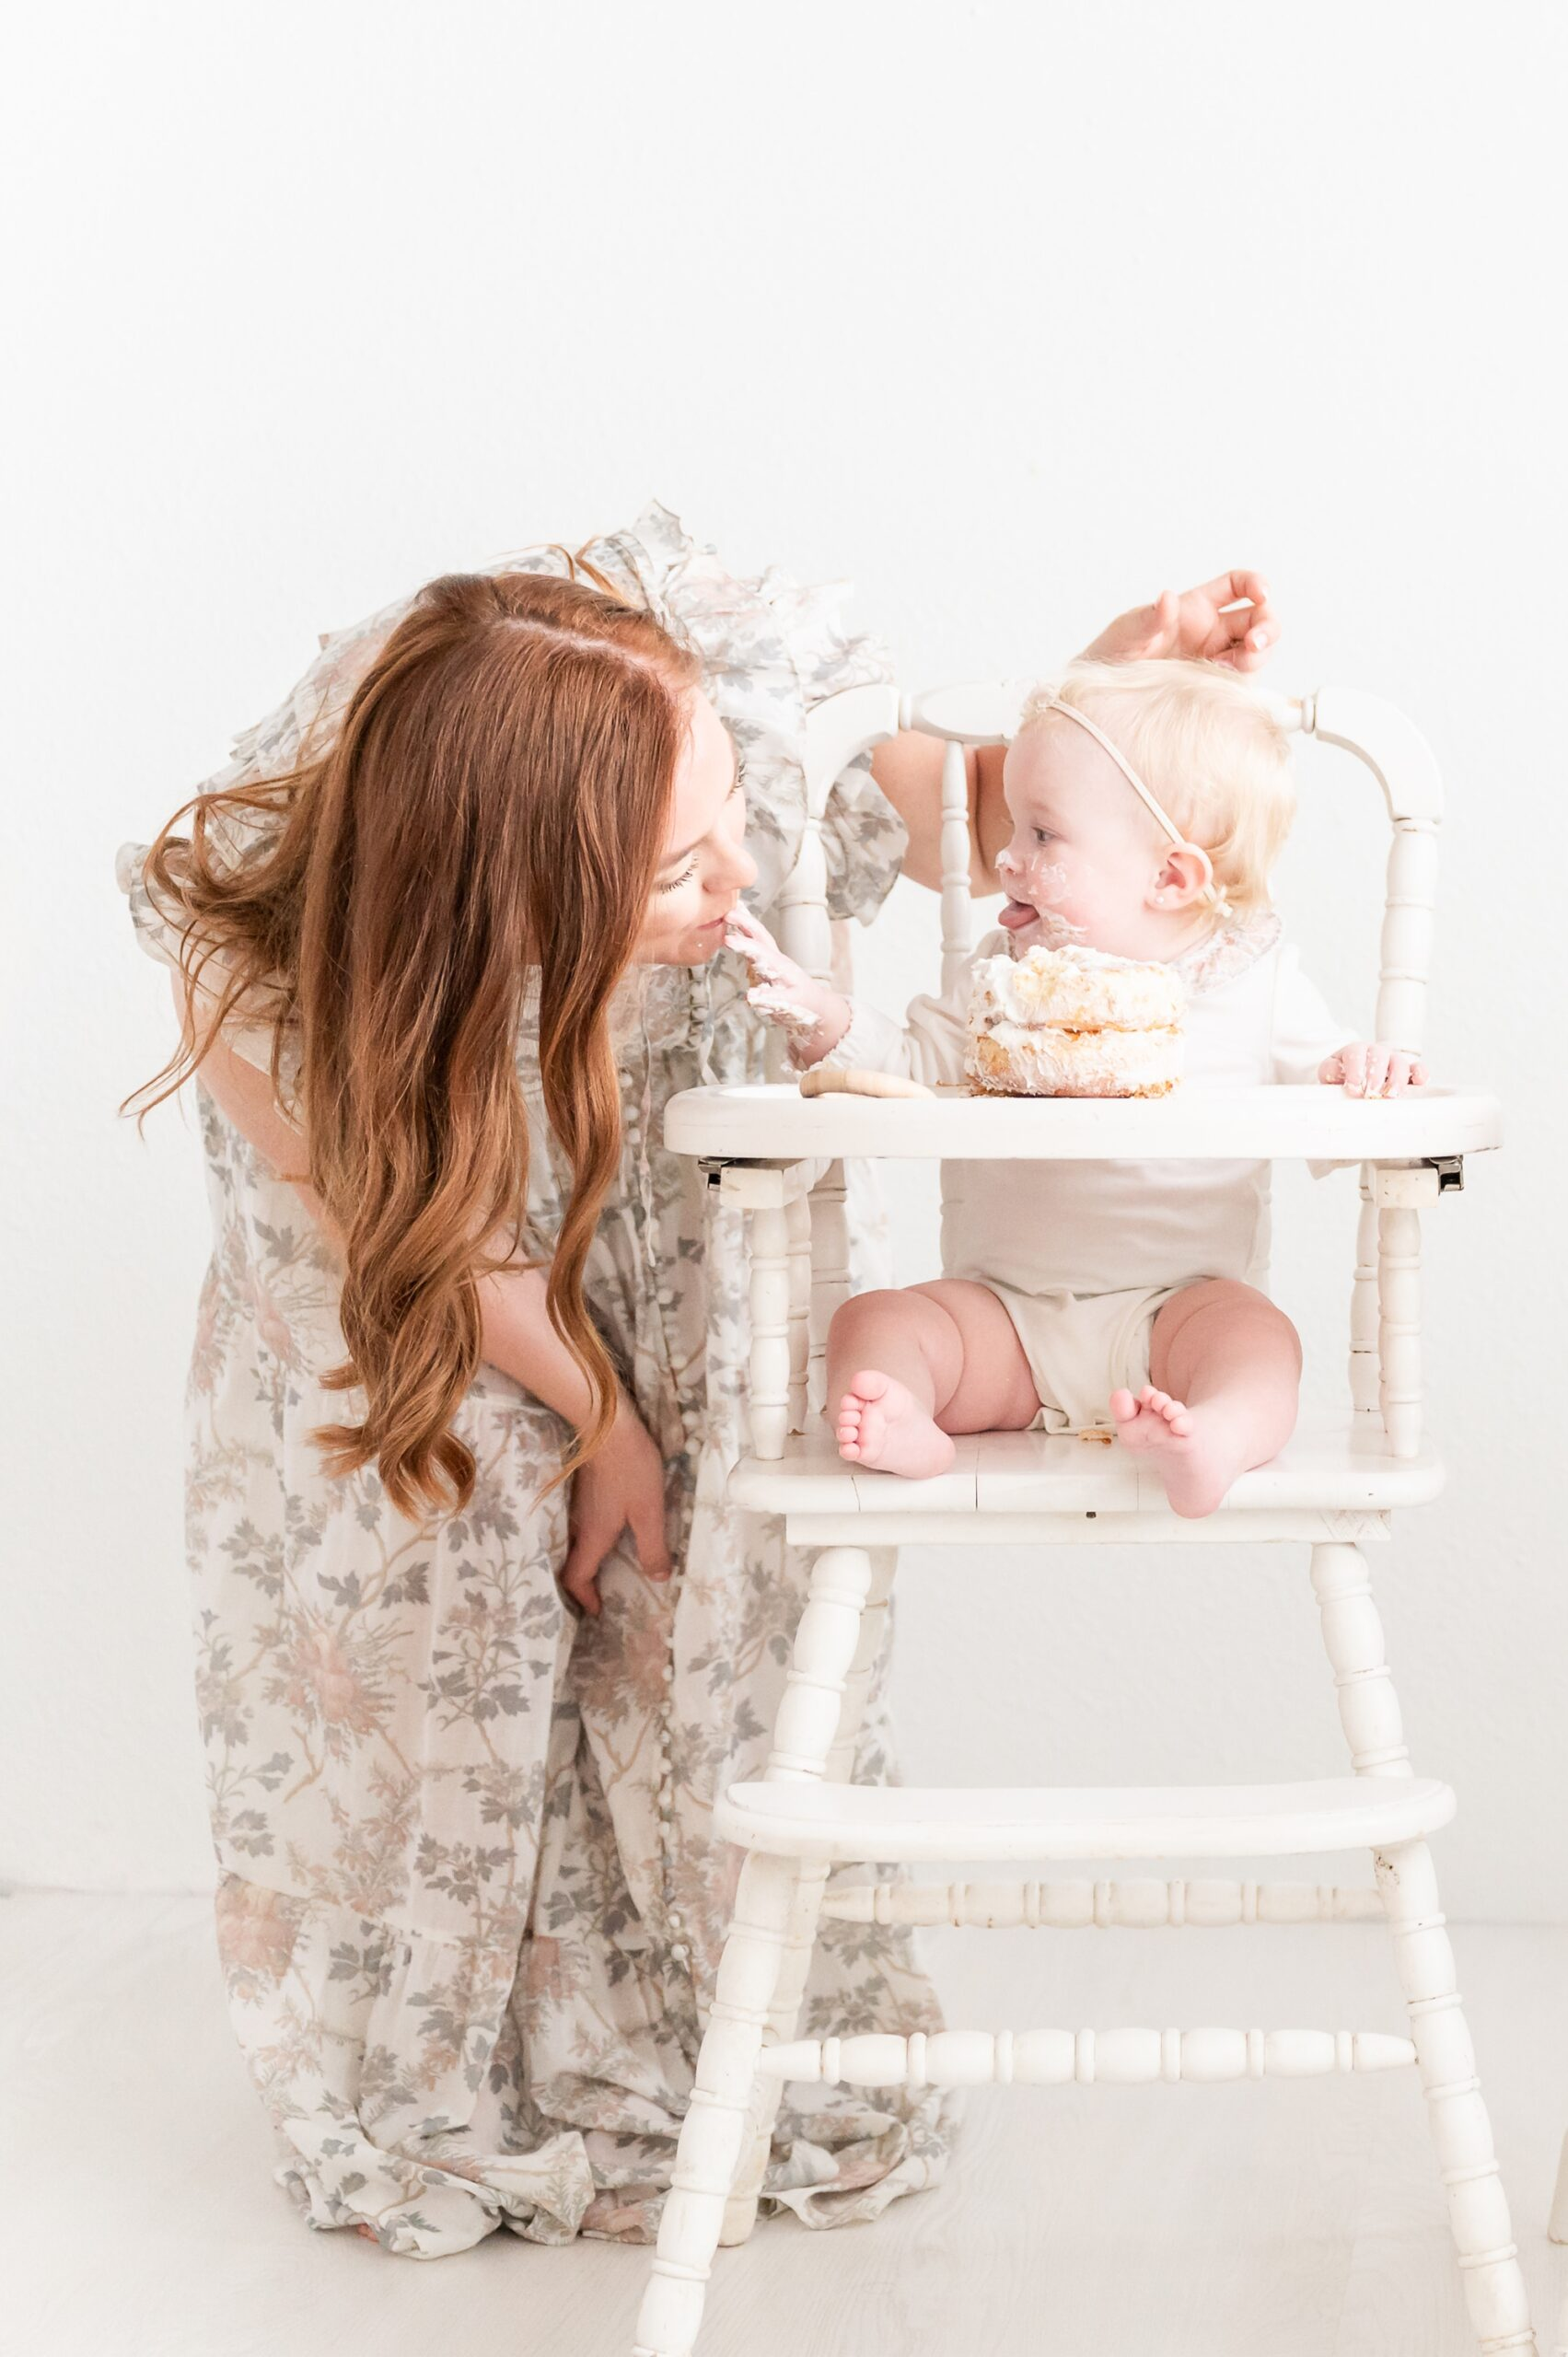 Baby girl feeding Mom cake during first birthday session in Dallas studio. Photo by Aimee Hamilton Photography.